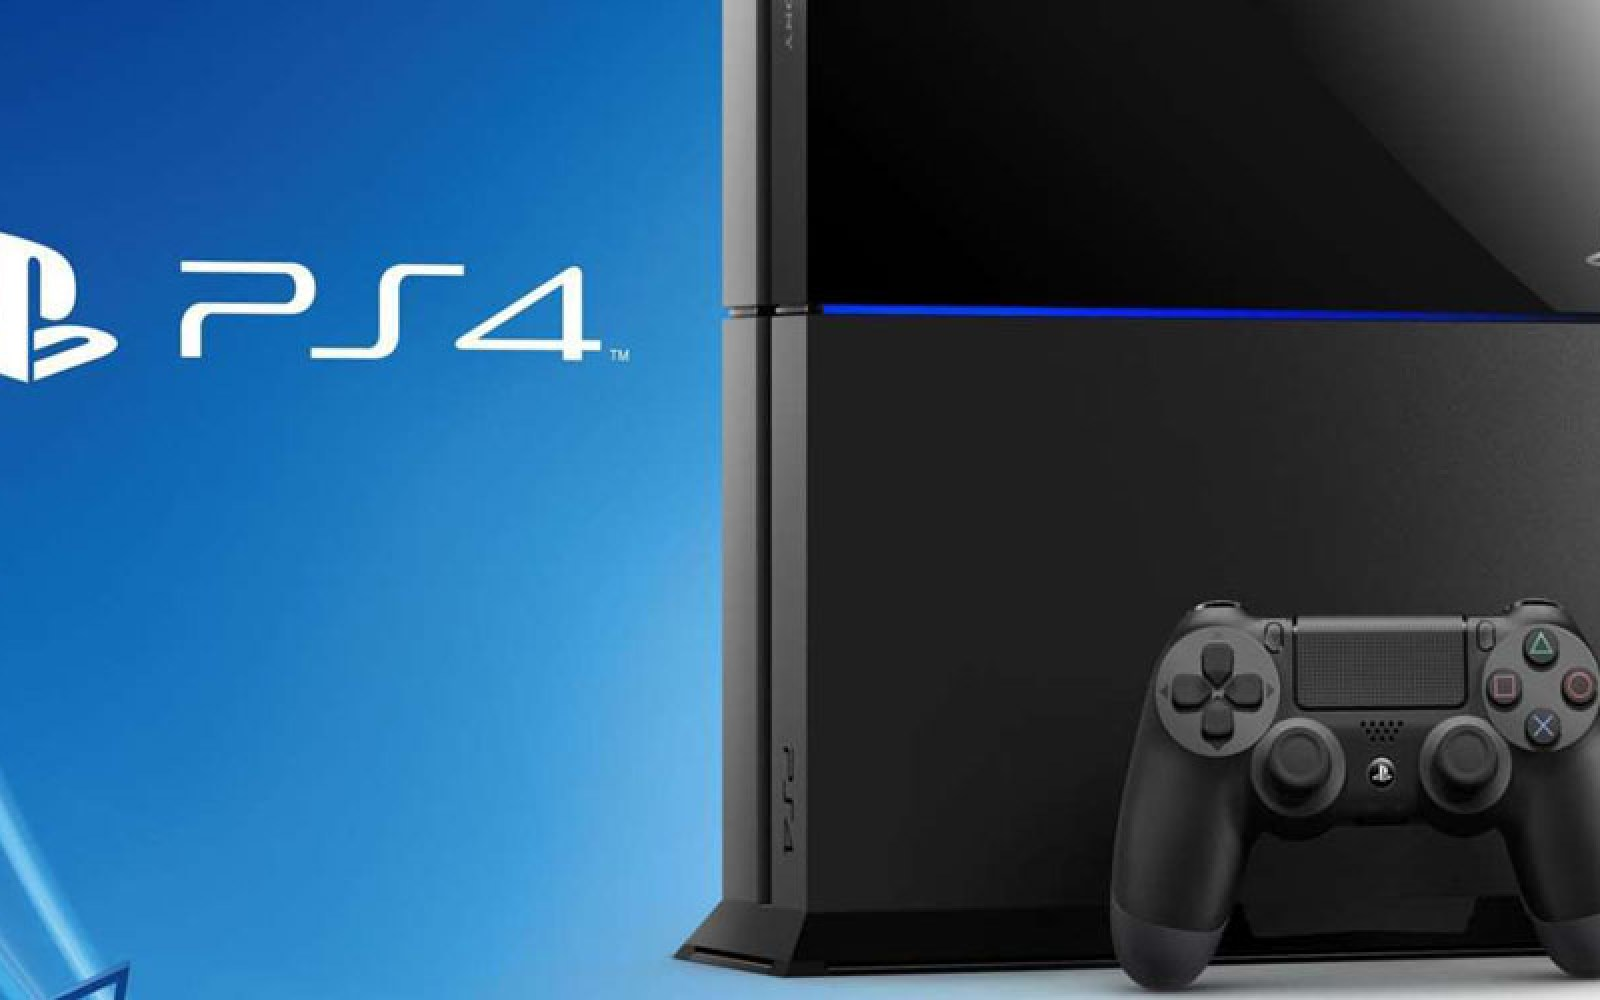 Sony's Remote Play feature for playing PS4 games on Mac is launching tomorrow